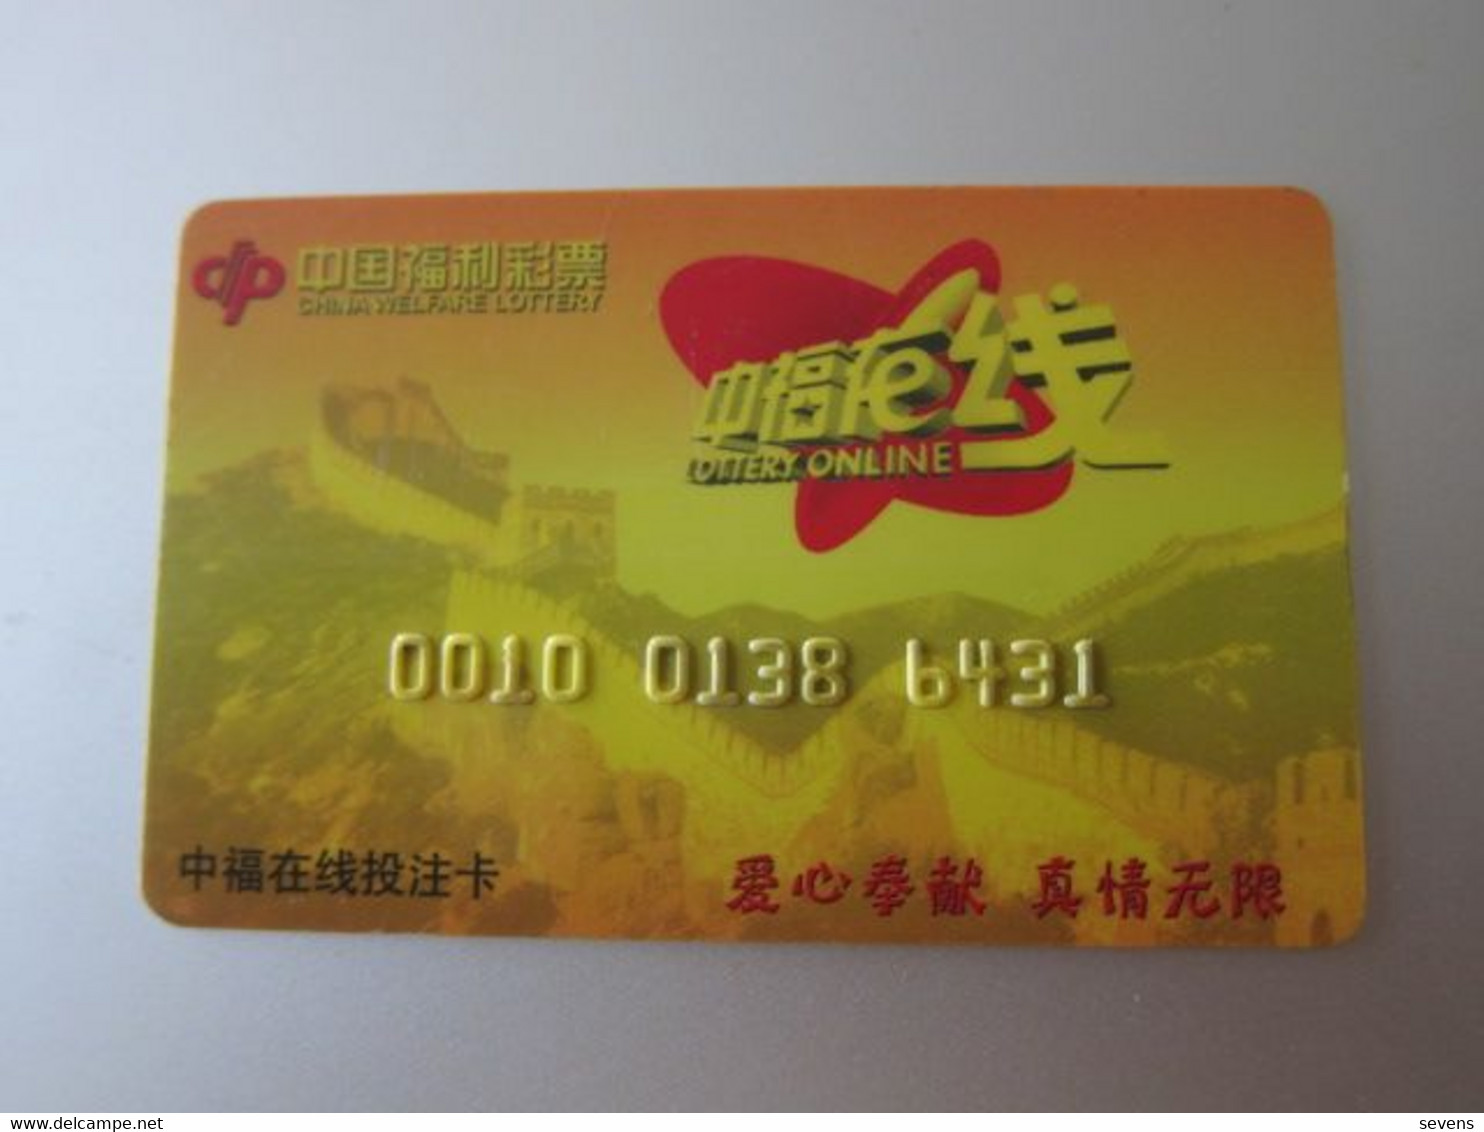 China Welfare Lottery On-line Bet Card - Unclassified